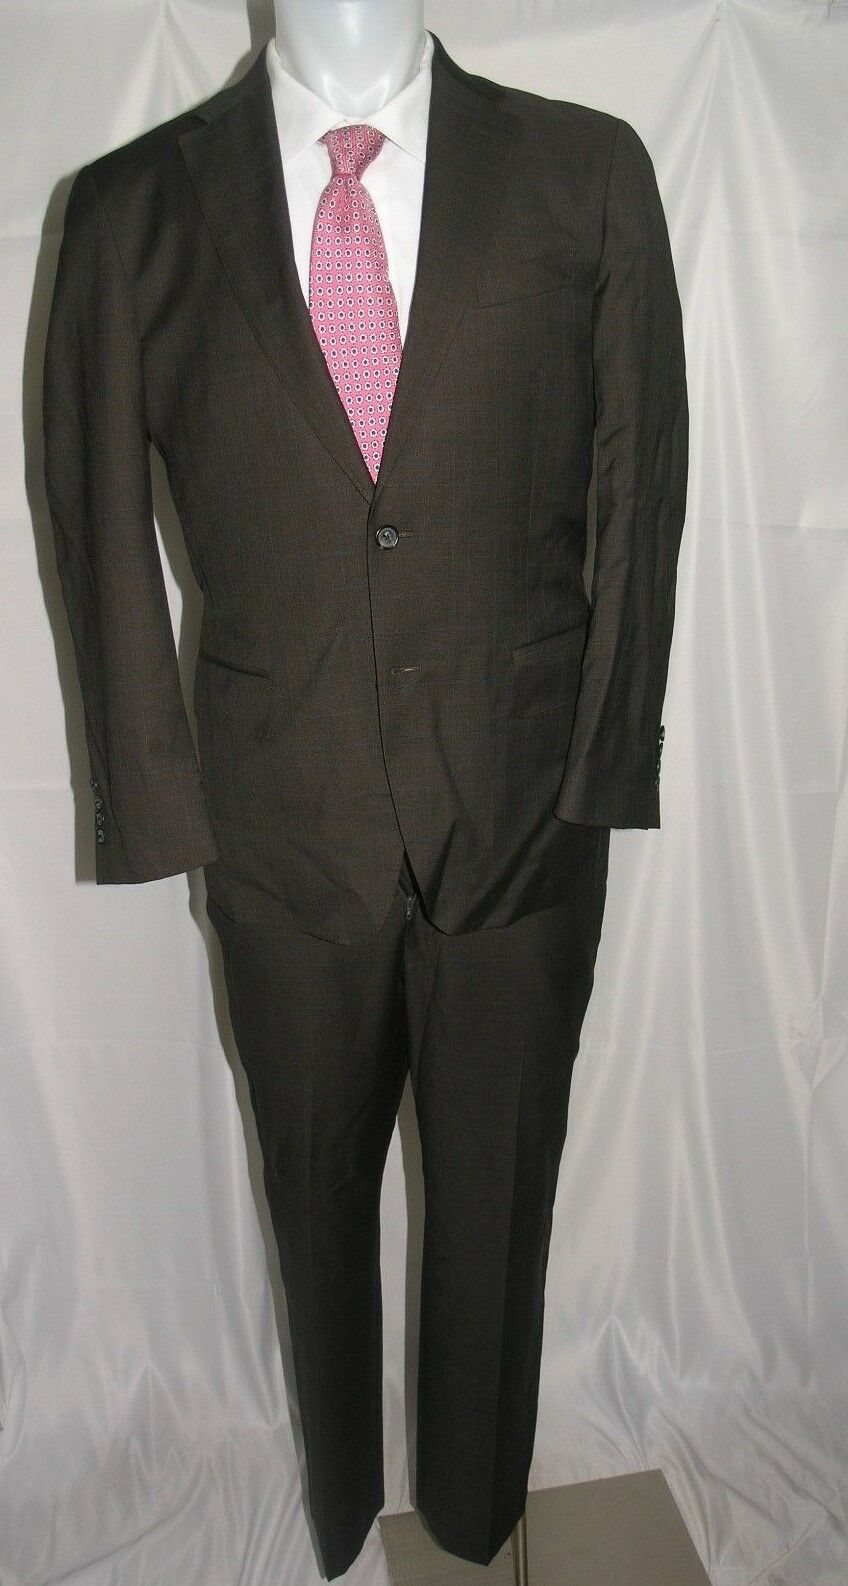 Faconnable Guabello Super 130 Two Button Flat Front Suit 40 R 36 x 30